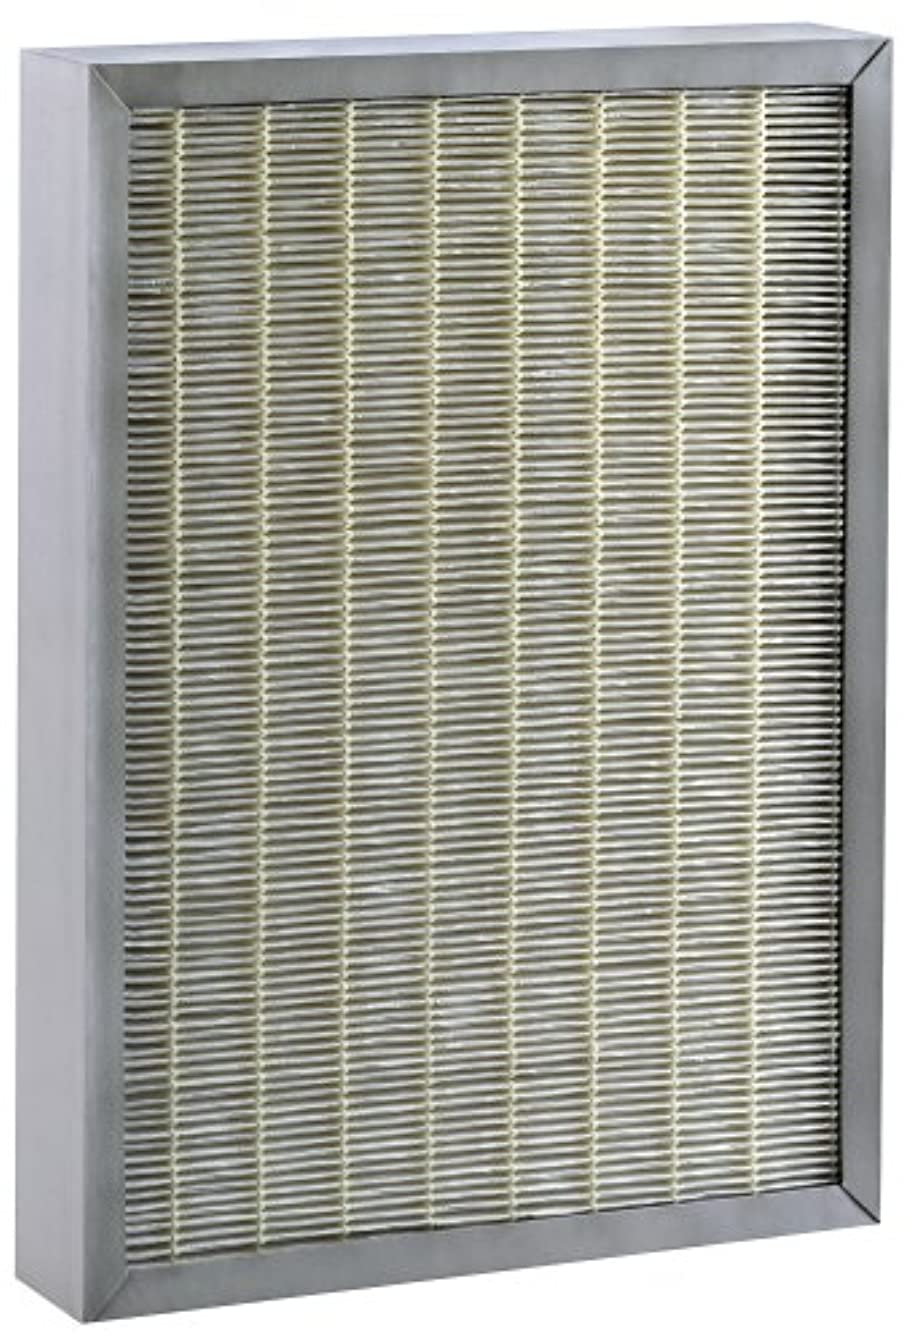 Hunter 30936 Replacement for HEPAtech Quiet Flo Air Purfiers